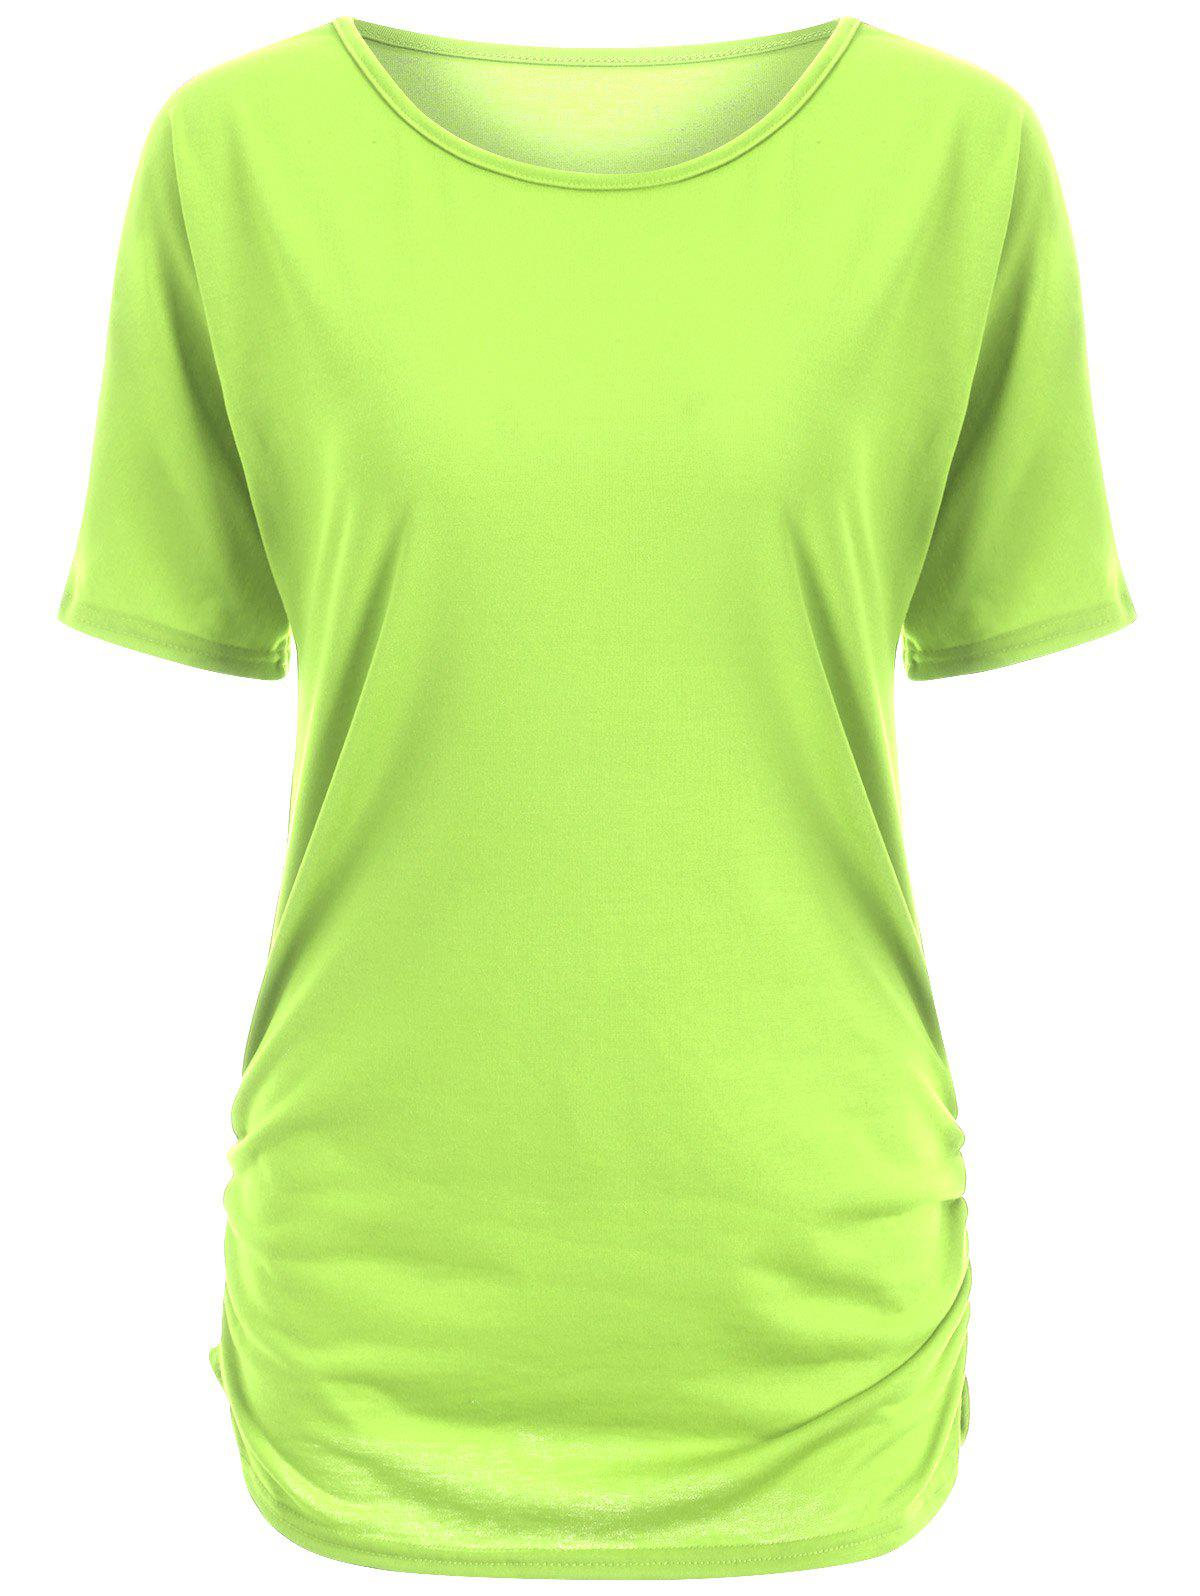 Candy color ruched tee neon green s in tees t shirts for Neon colored t shirts wholesale